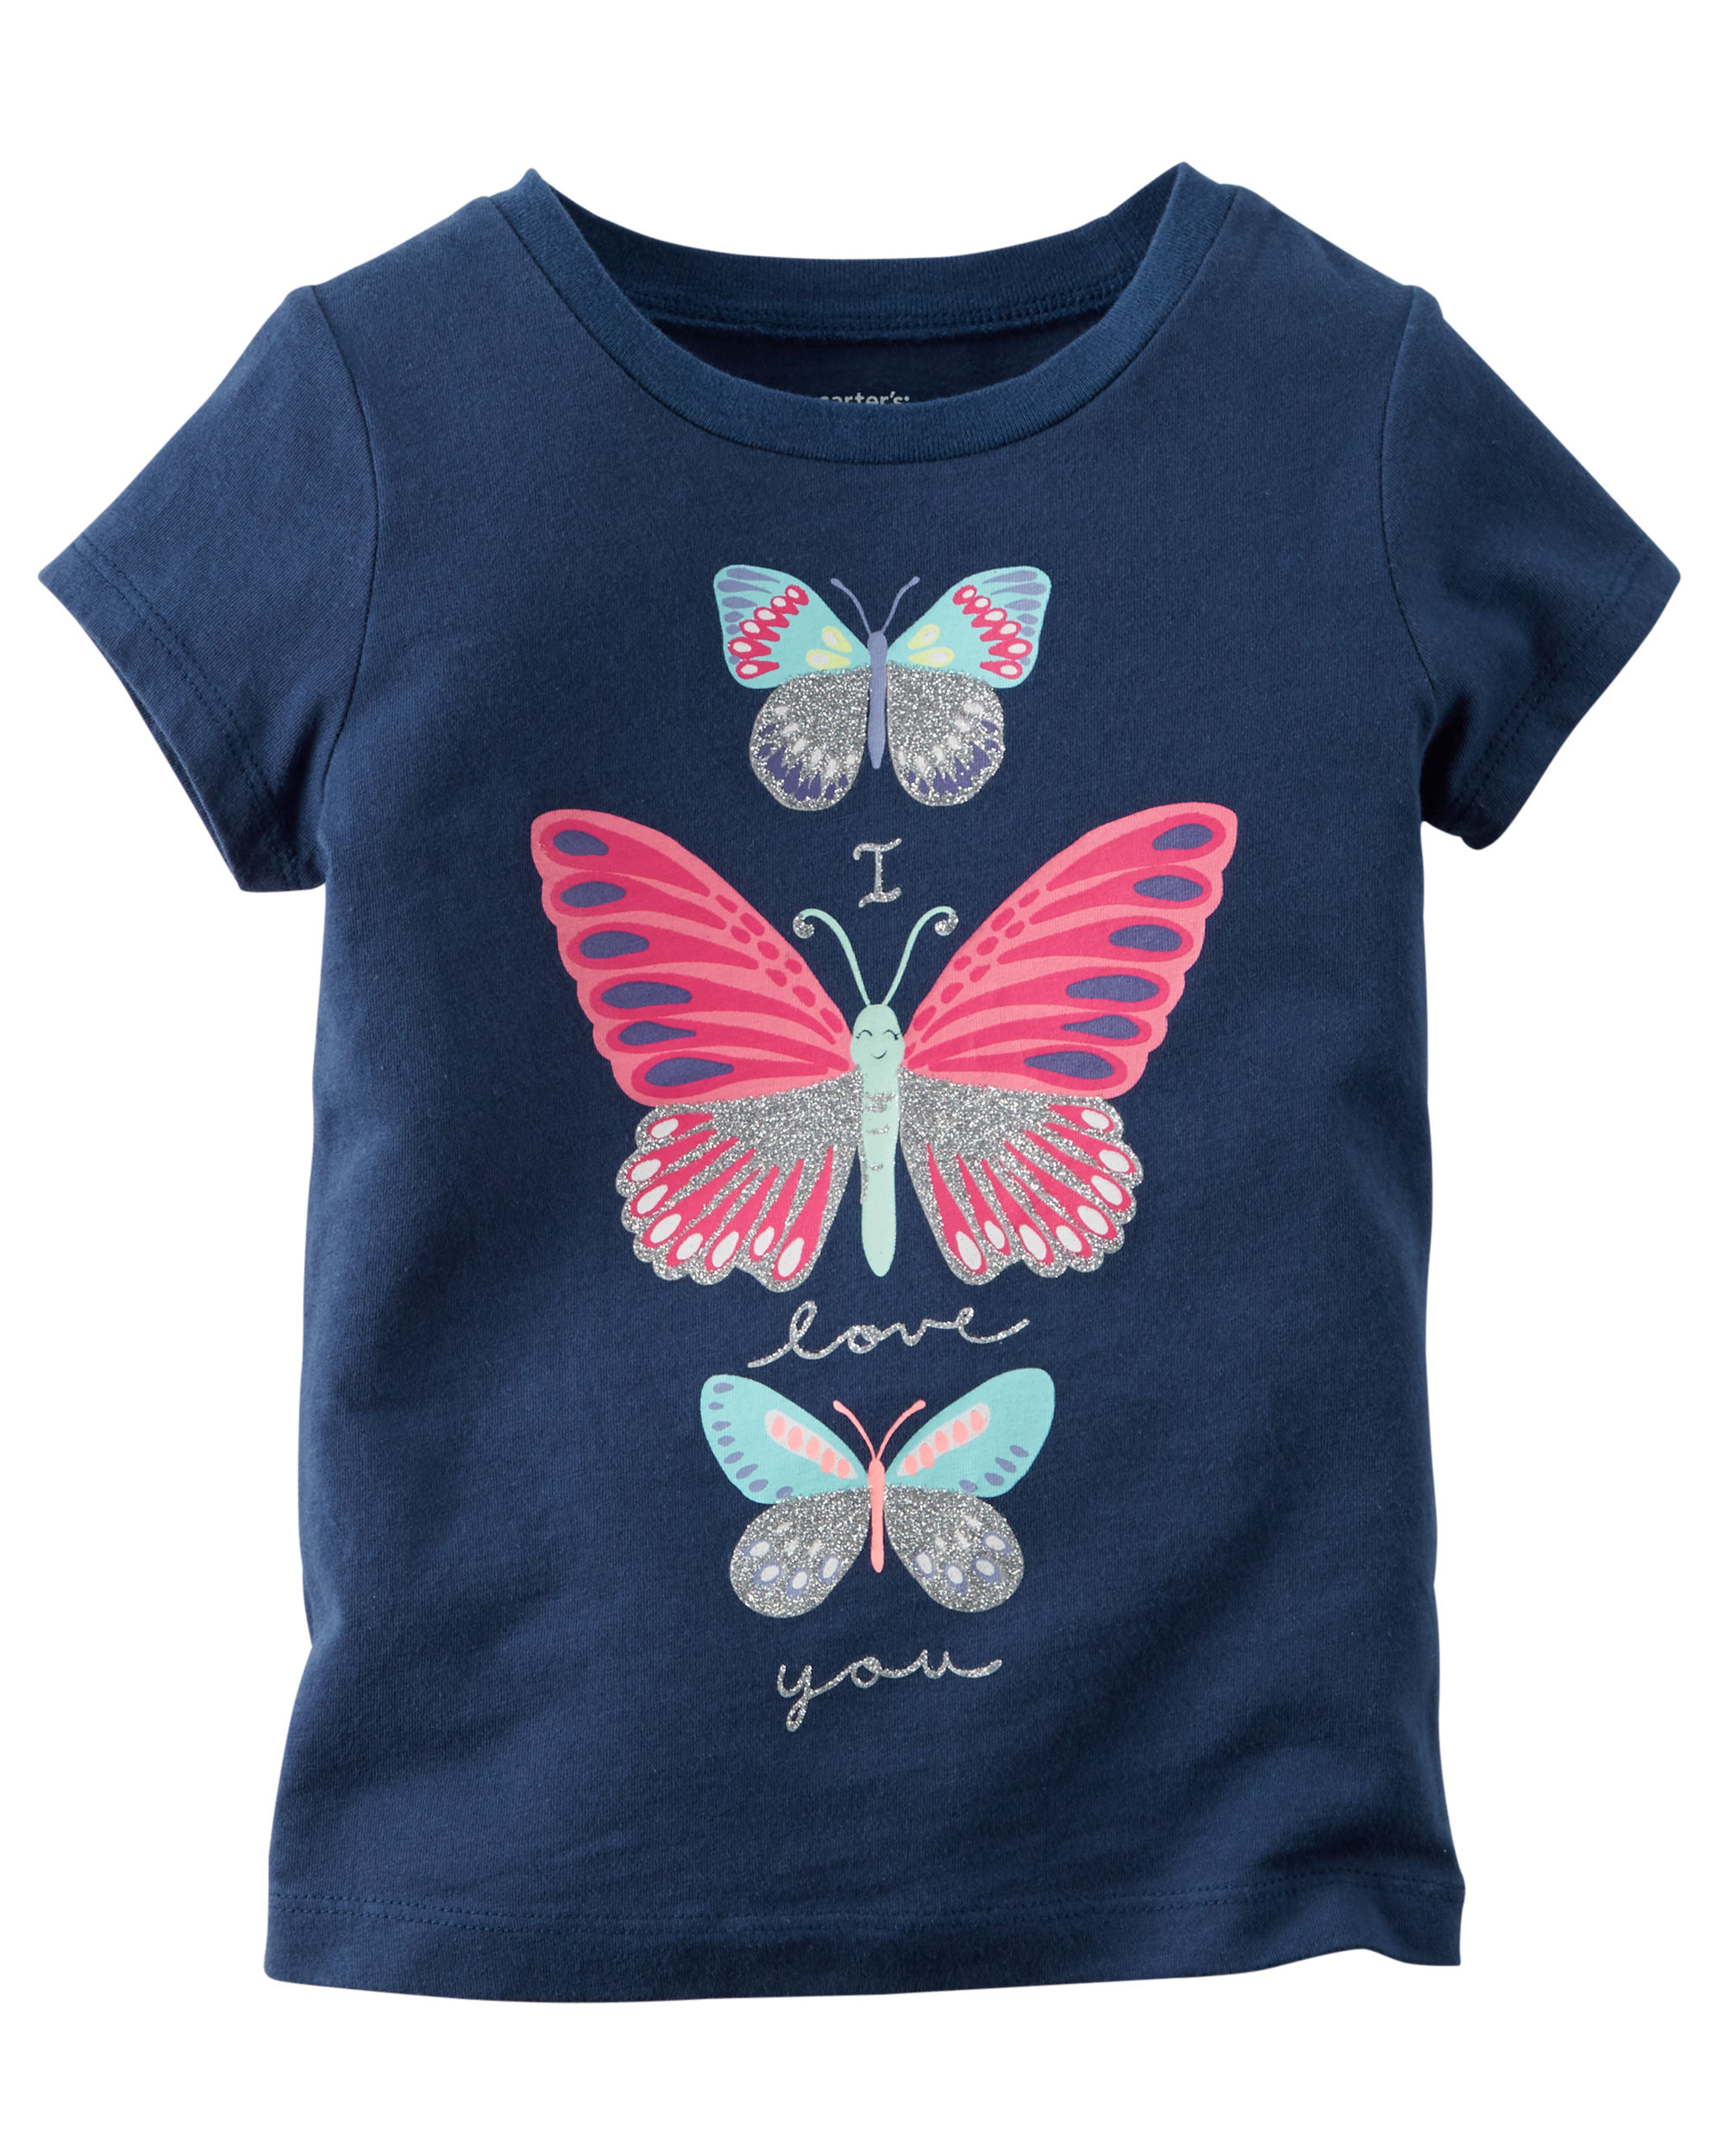 Butterfly Graphic Tee - $6.00